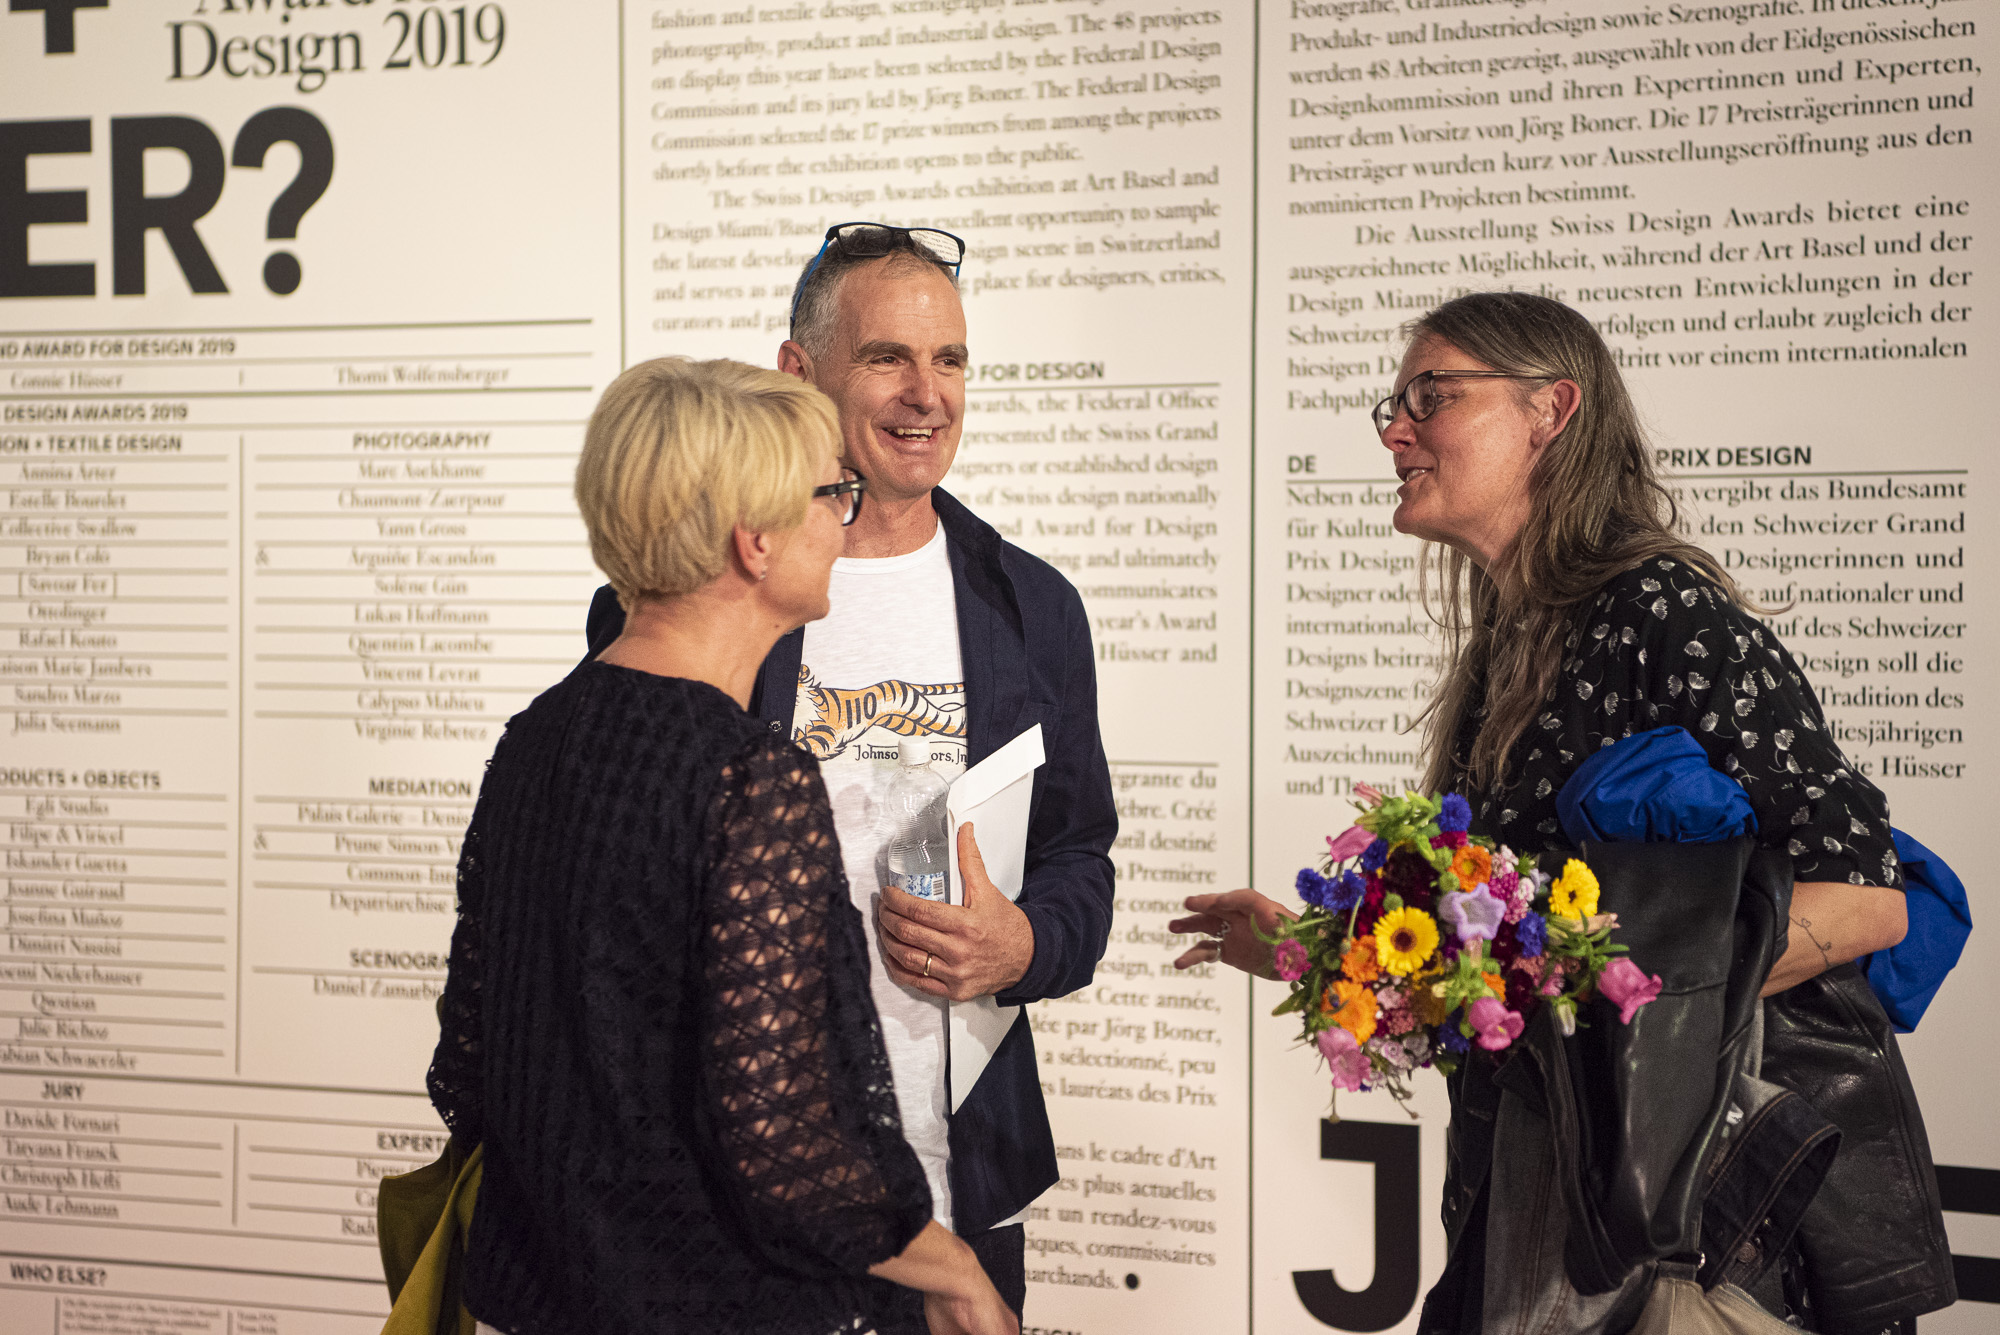 Grand Prix Design 2019 winner Thomi Wolfensberger and his wife Karoline (right)